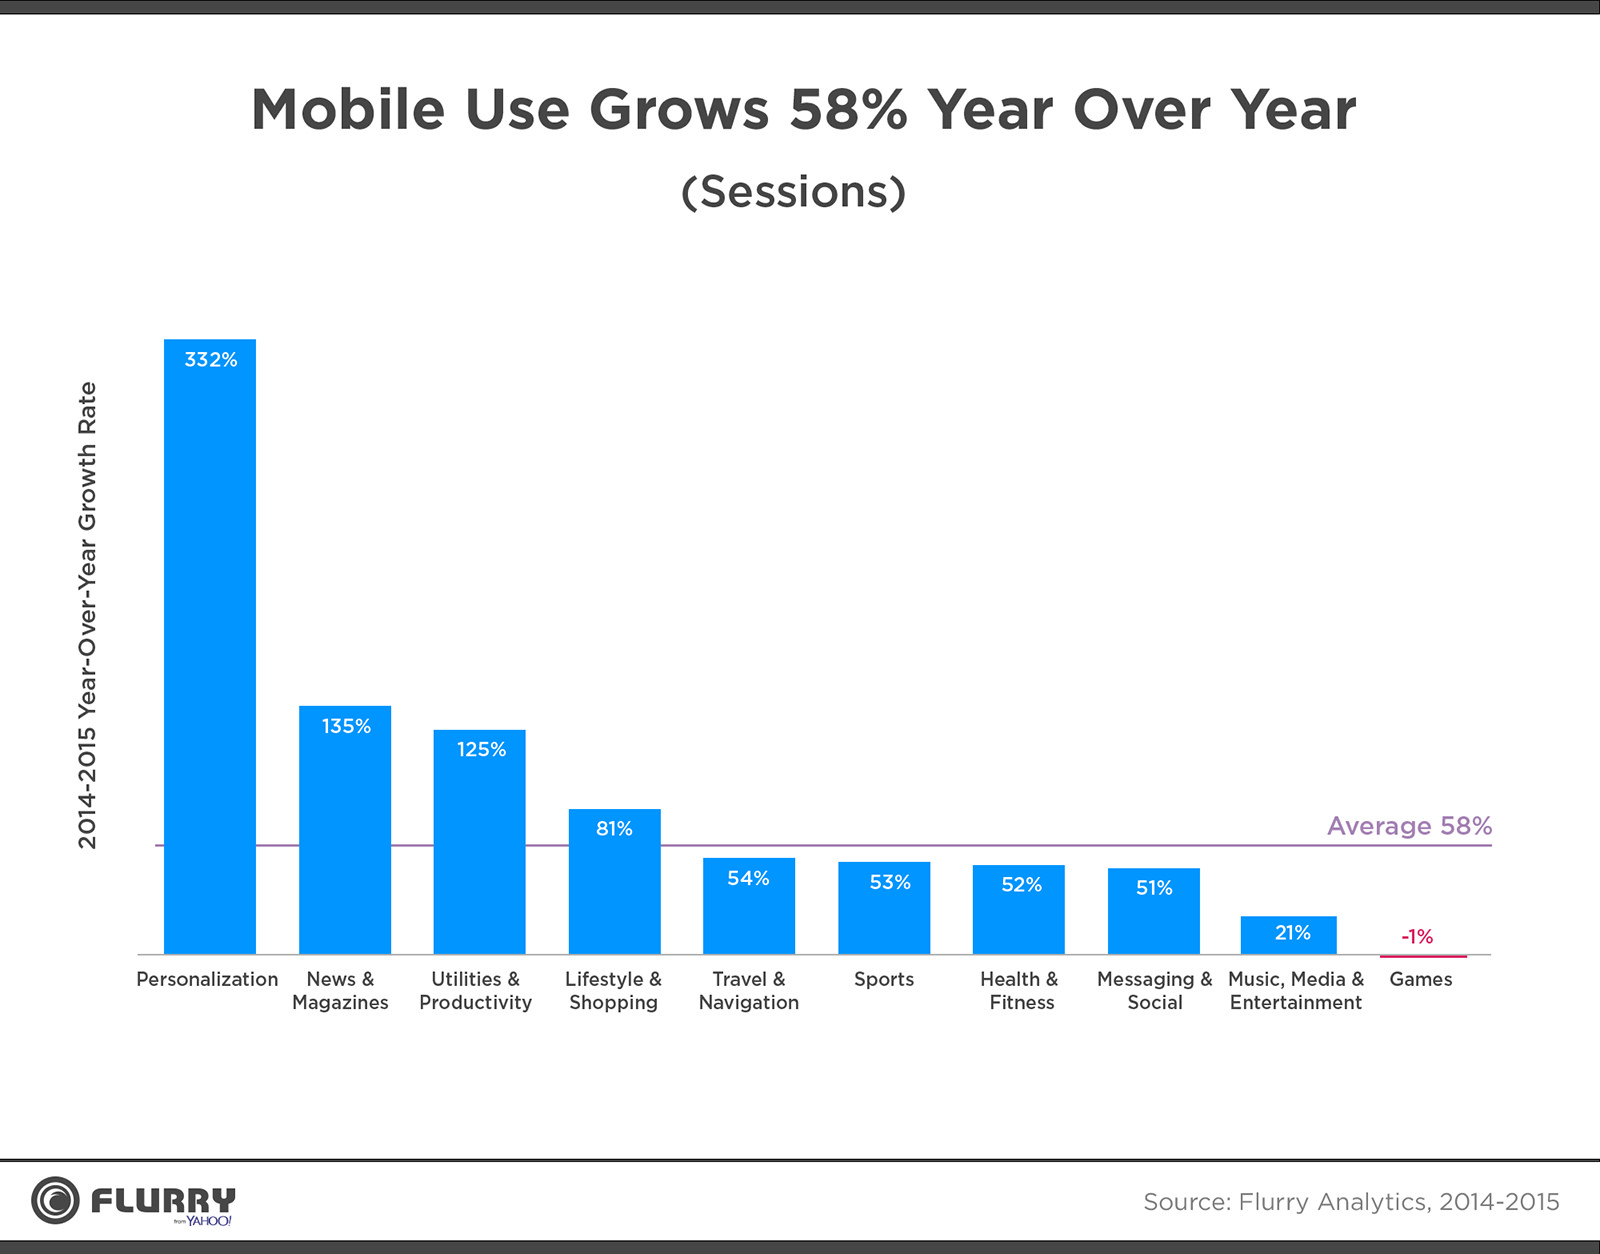 mobile-use-grows-58-year-on-year-2